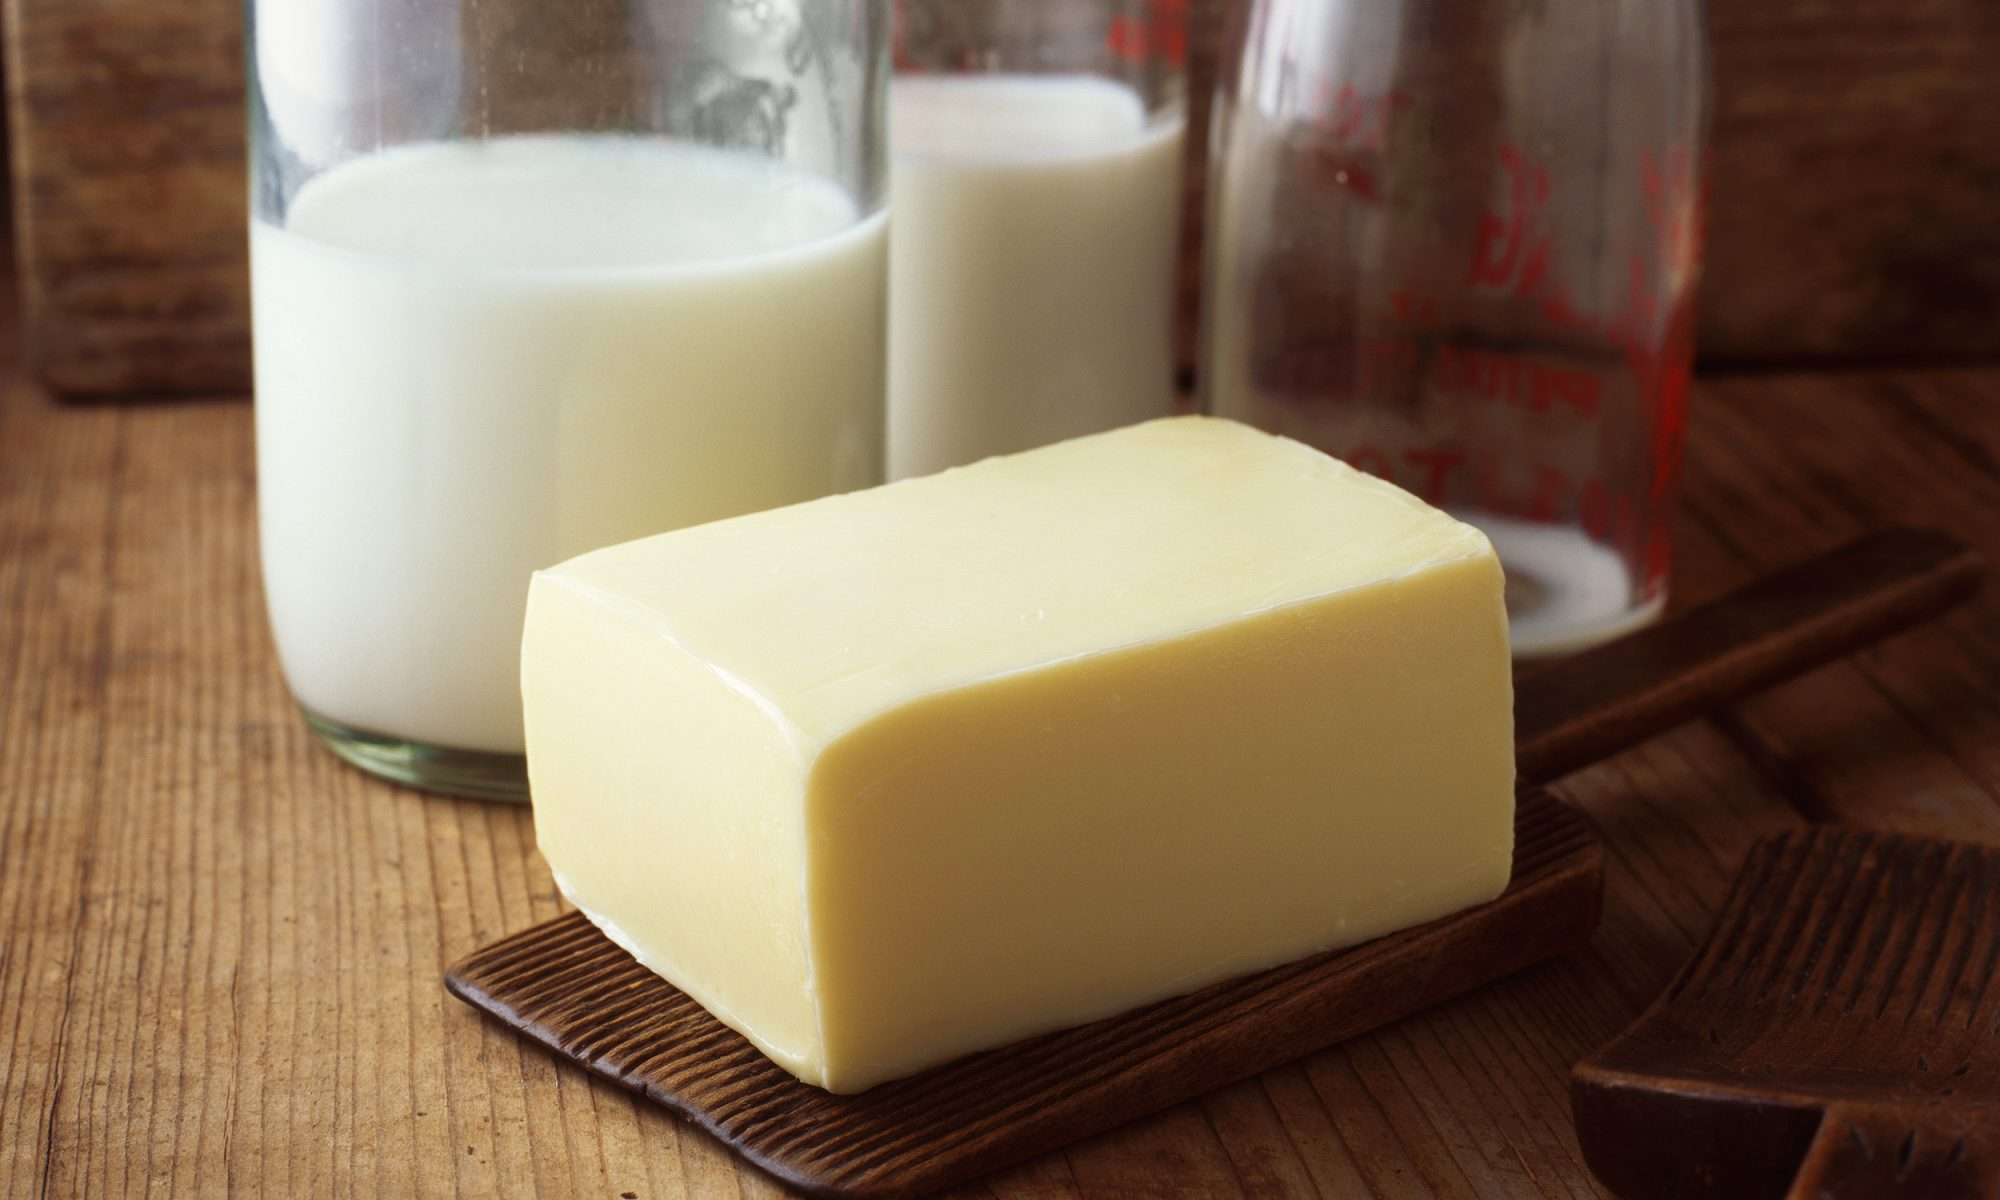 EC: Why Is Butter Yellow?